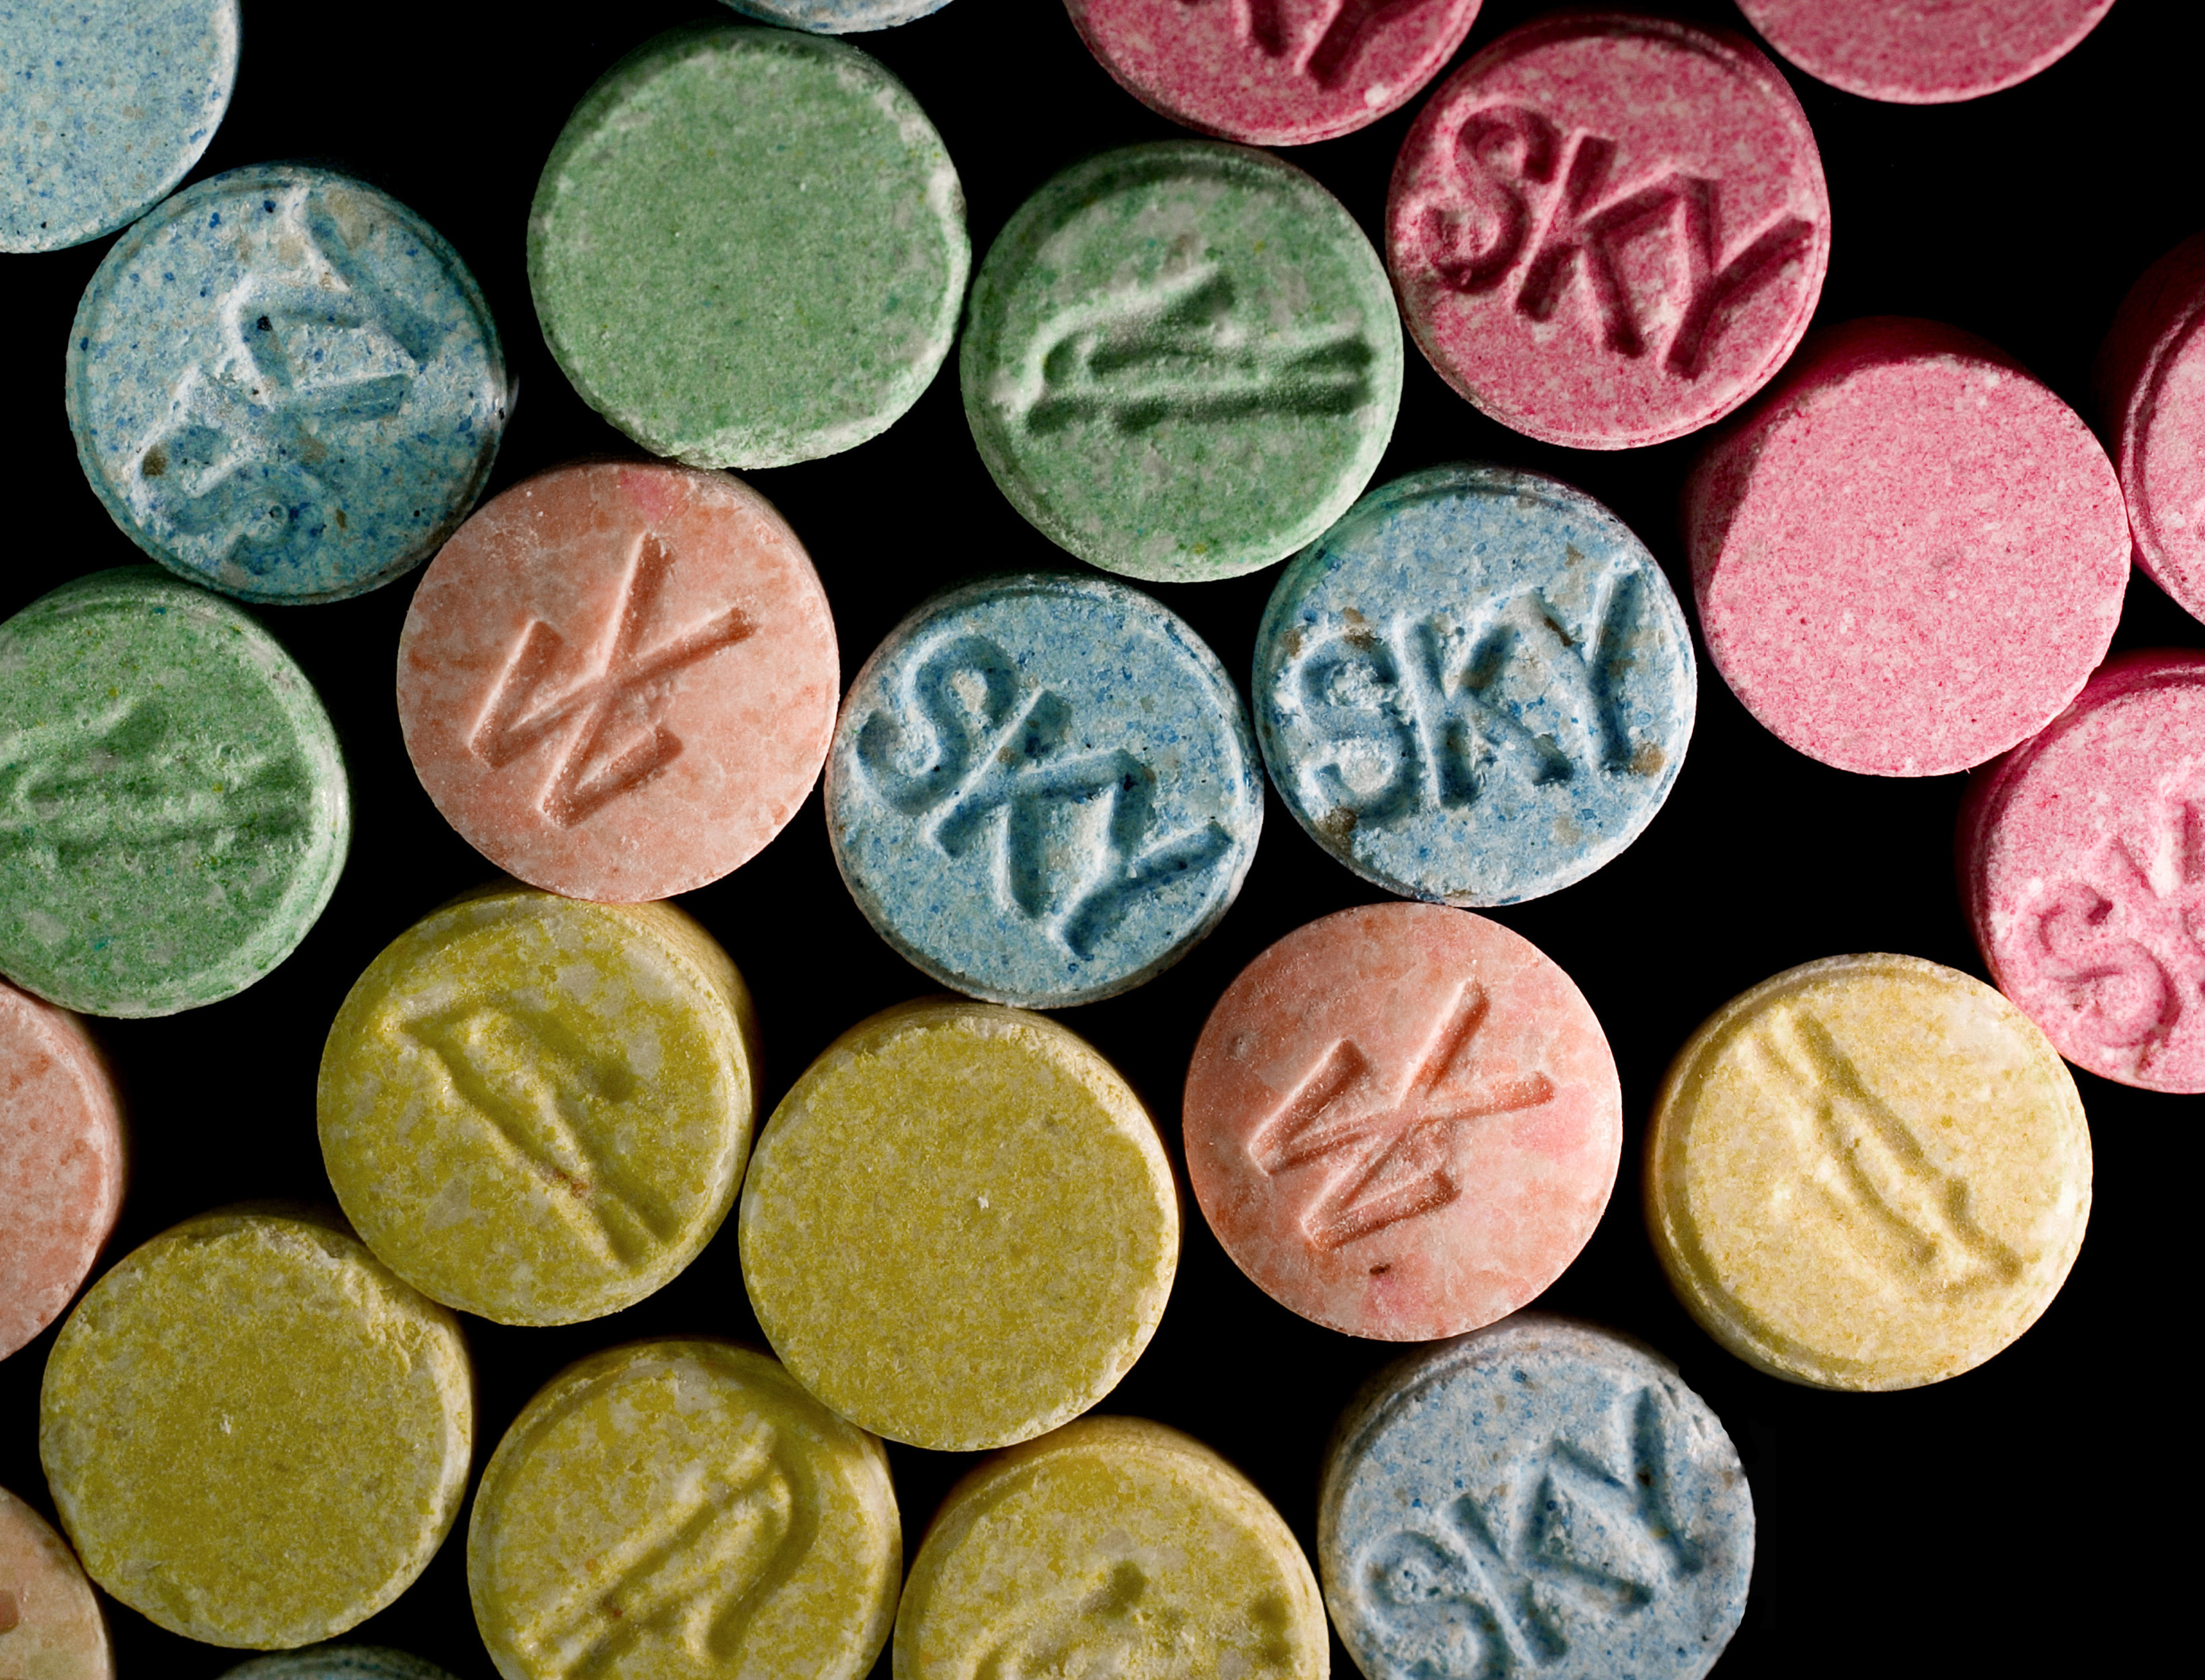 Undated handout of ecstasy pills, which contain MDMA as their main chemical